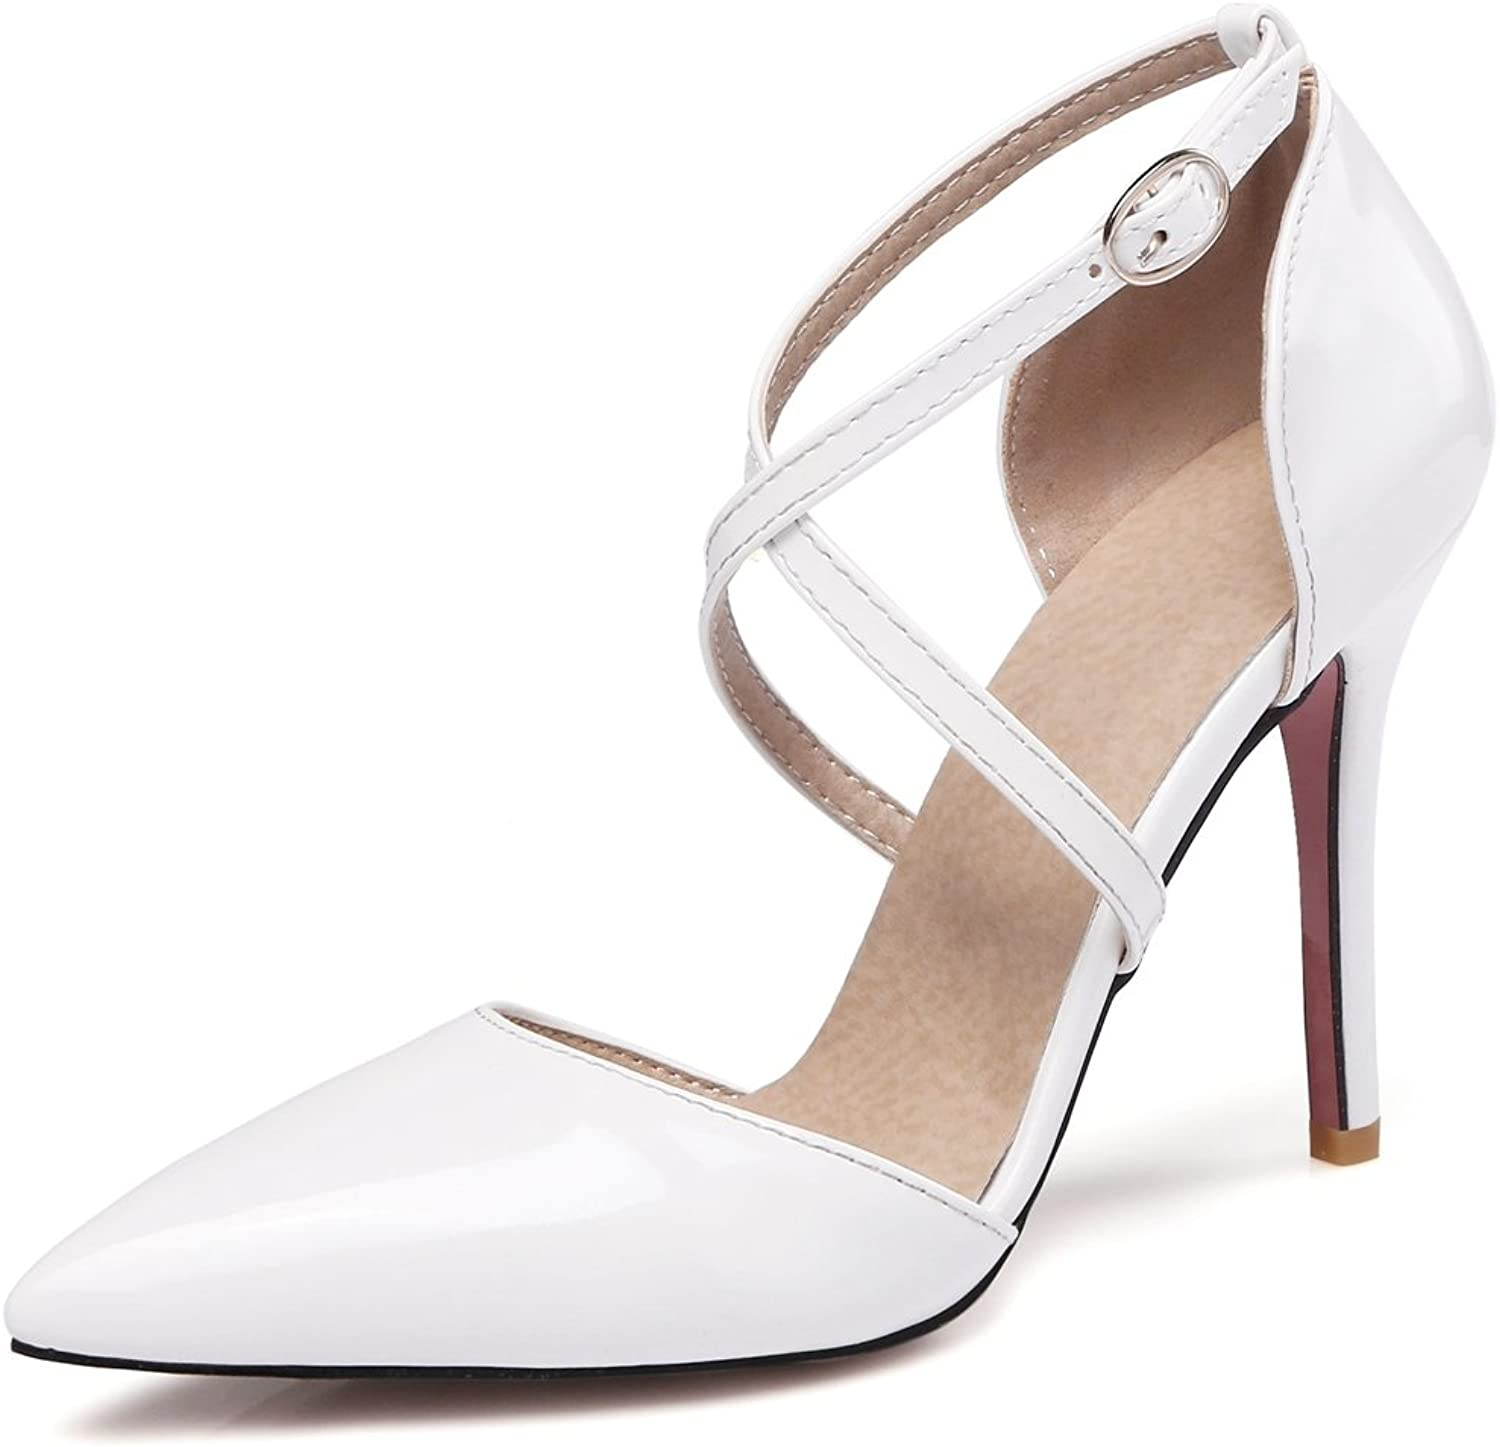 Kaloosh Women's Beautiful Patent Leather Pointed Toe Cross Strap Thin High Heel Party Night Pumps